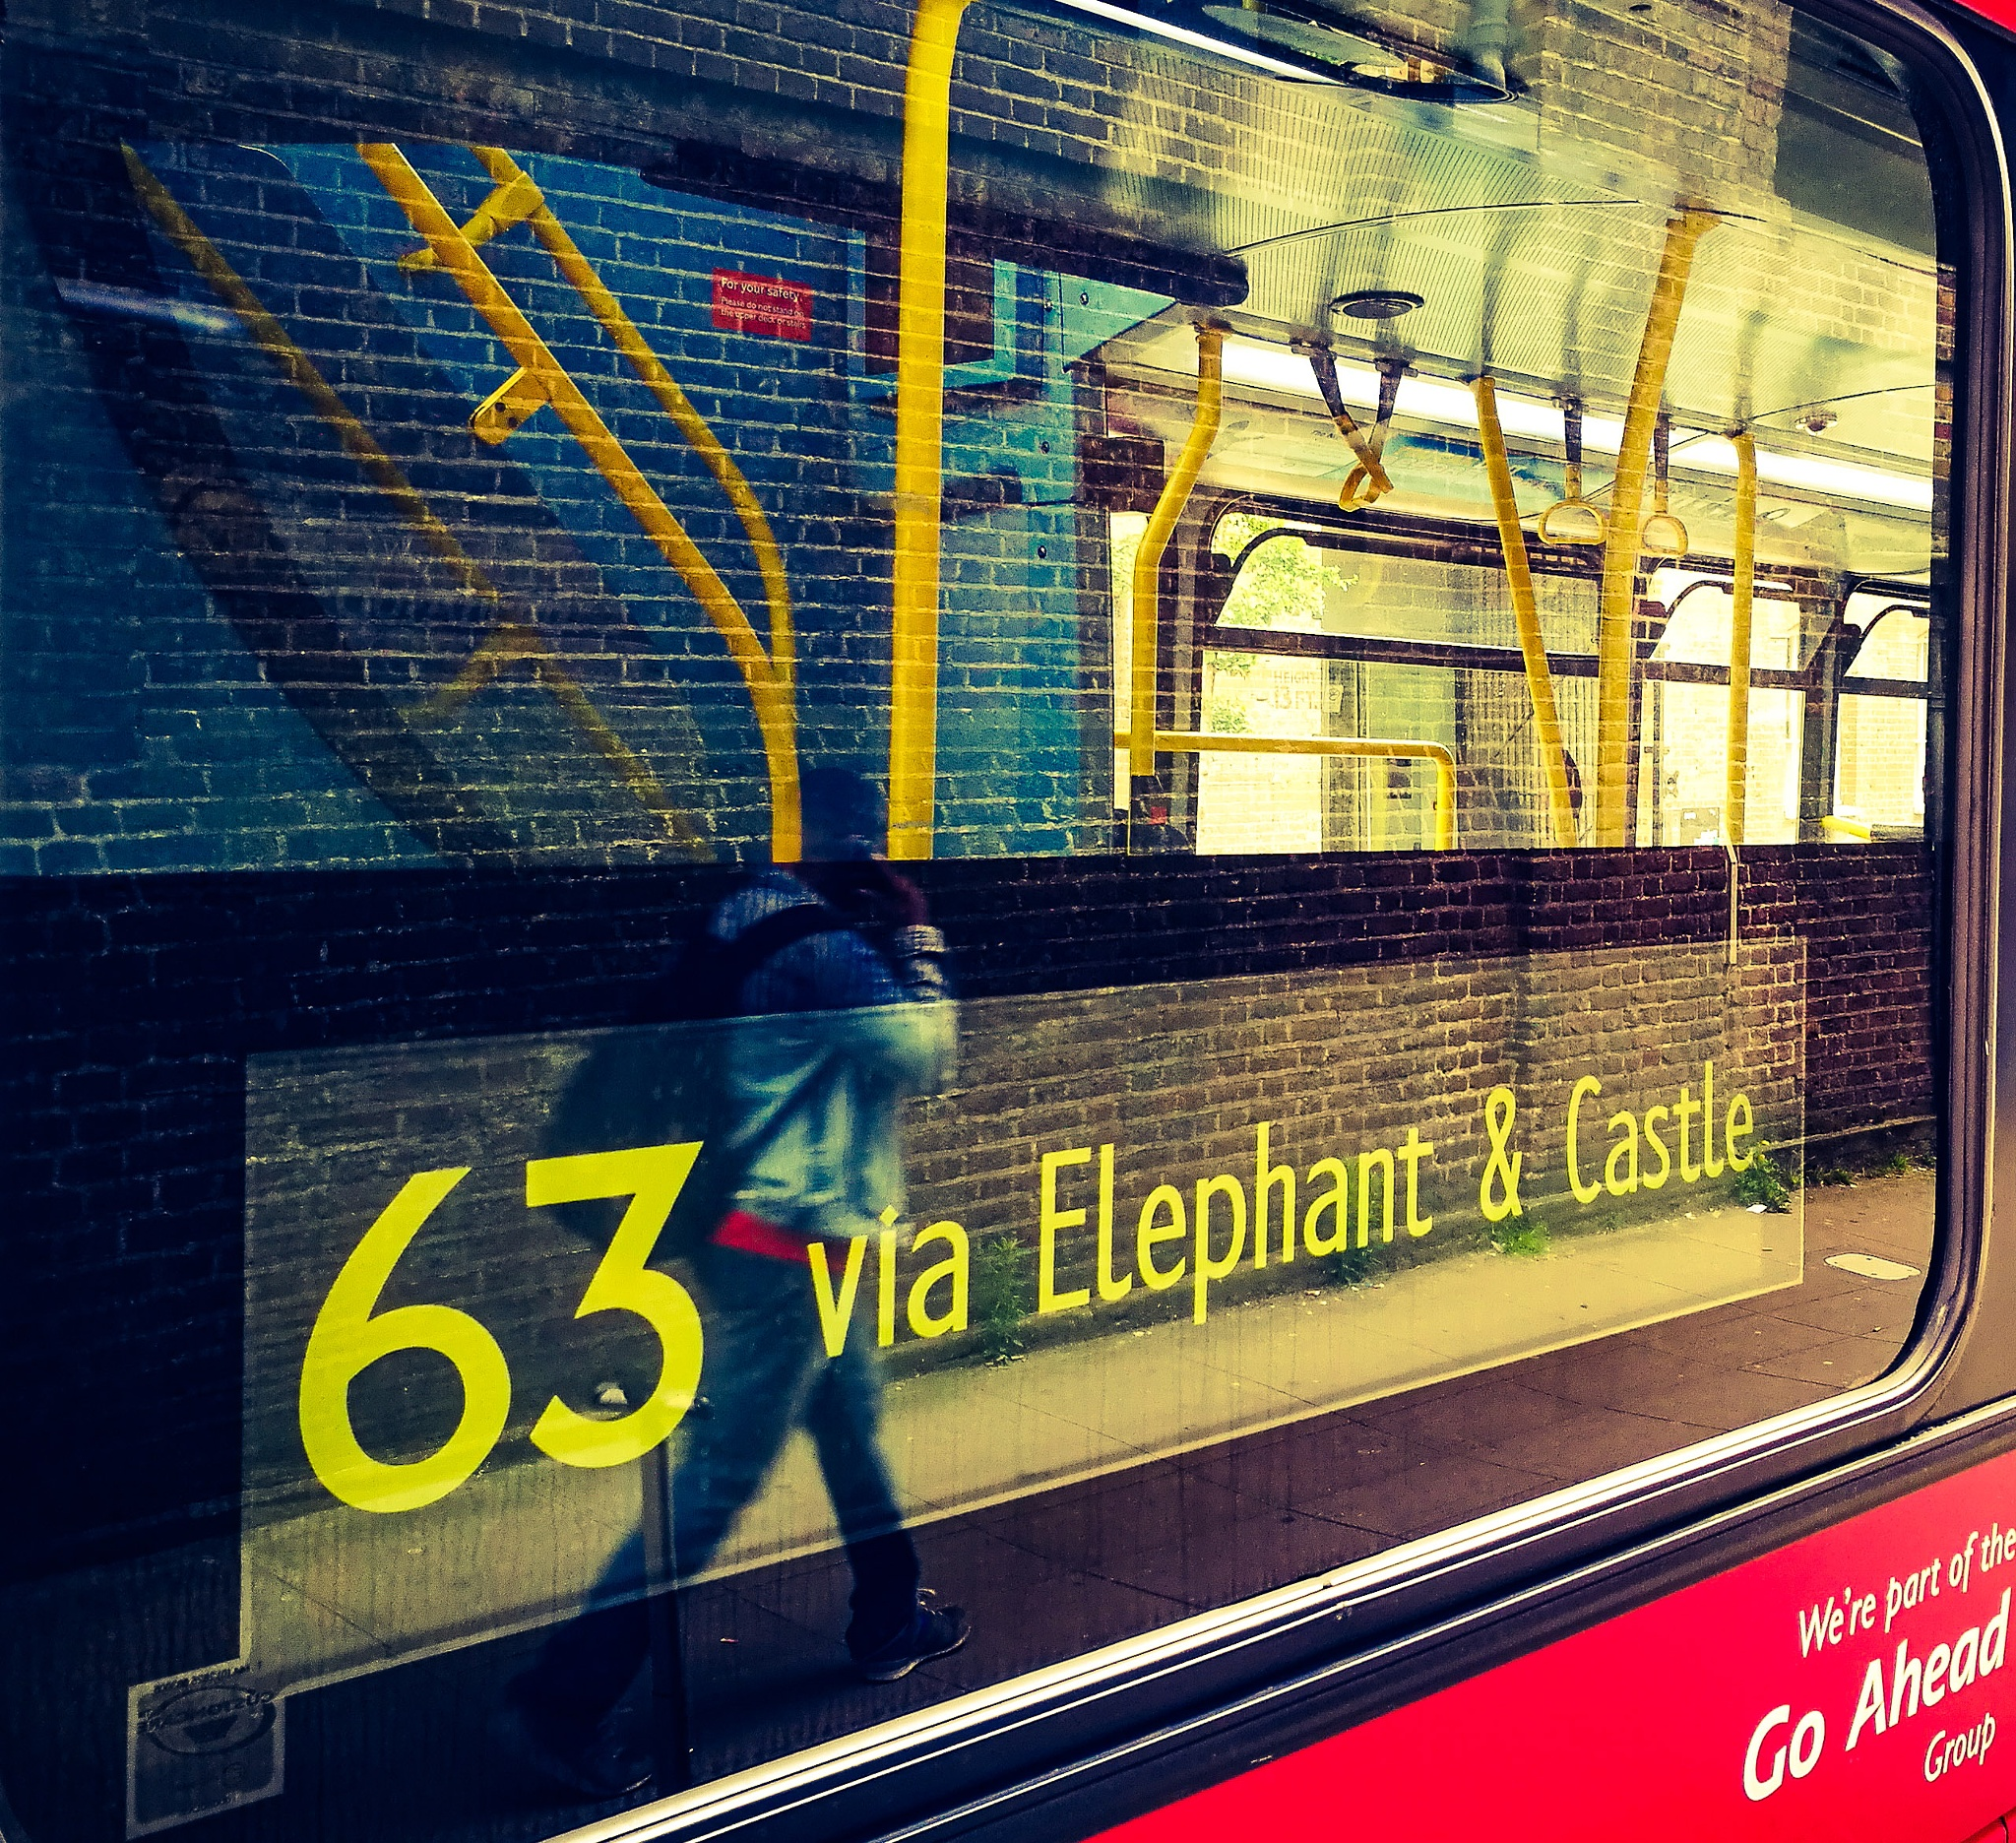 Reflecting on the iconic London bus  by robthebruce38